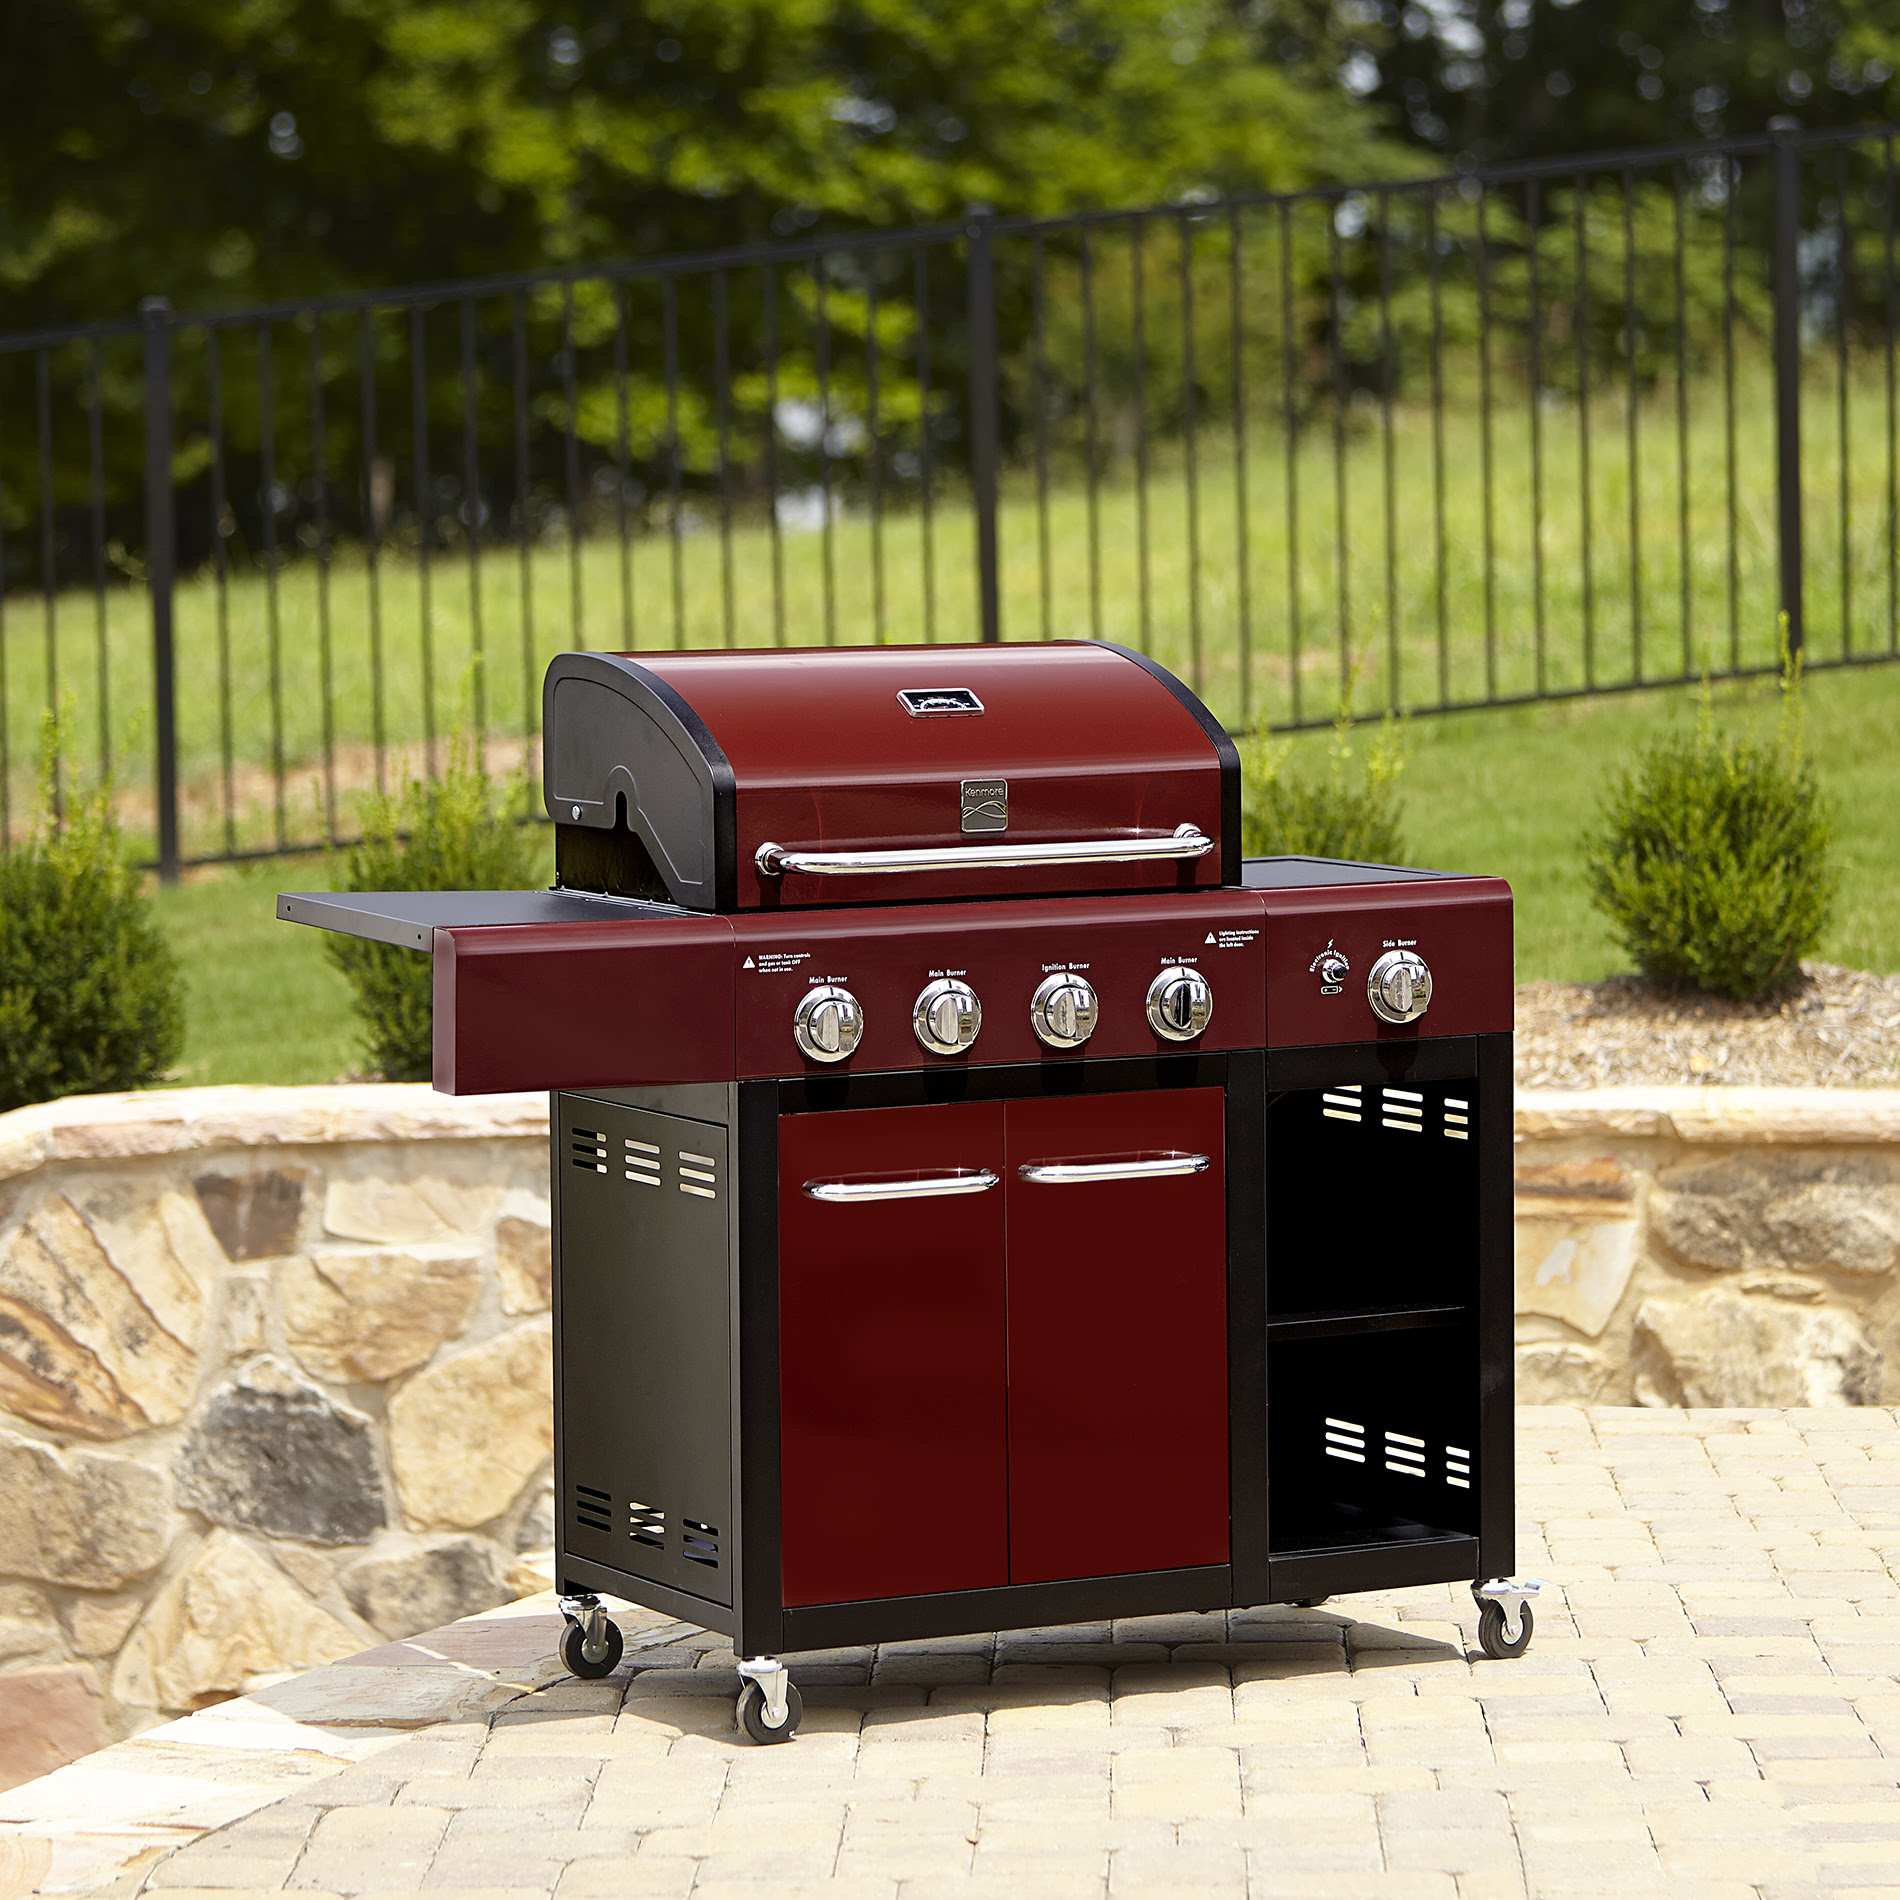 Kenmore gas grill coupons Easter show carnival coupons